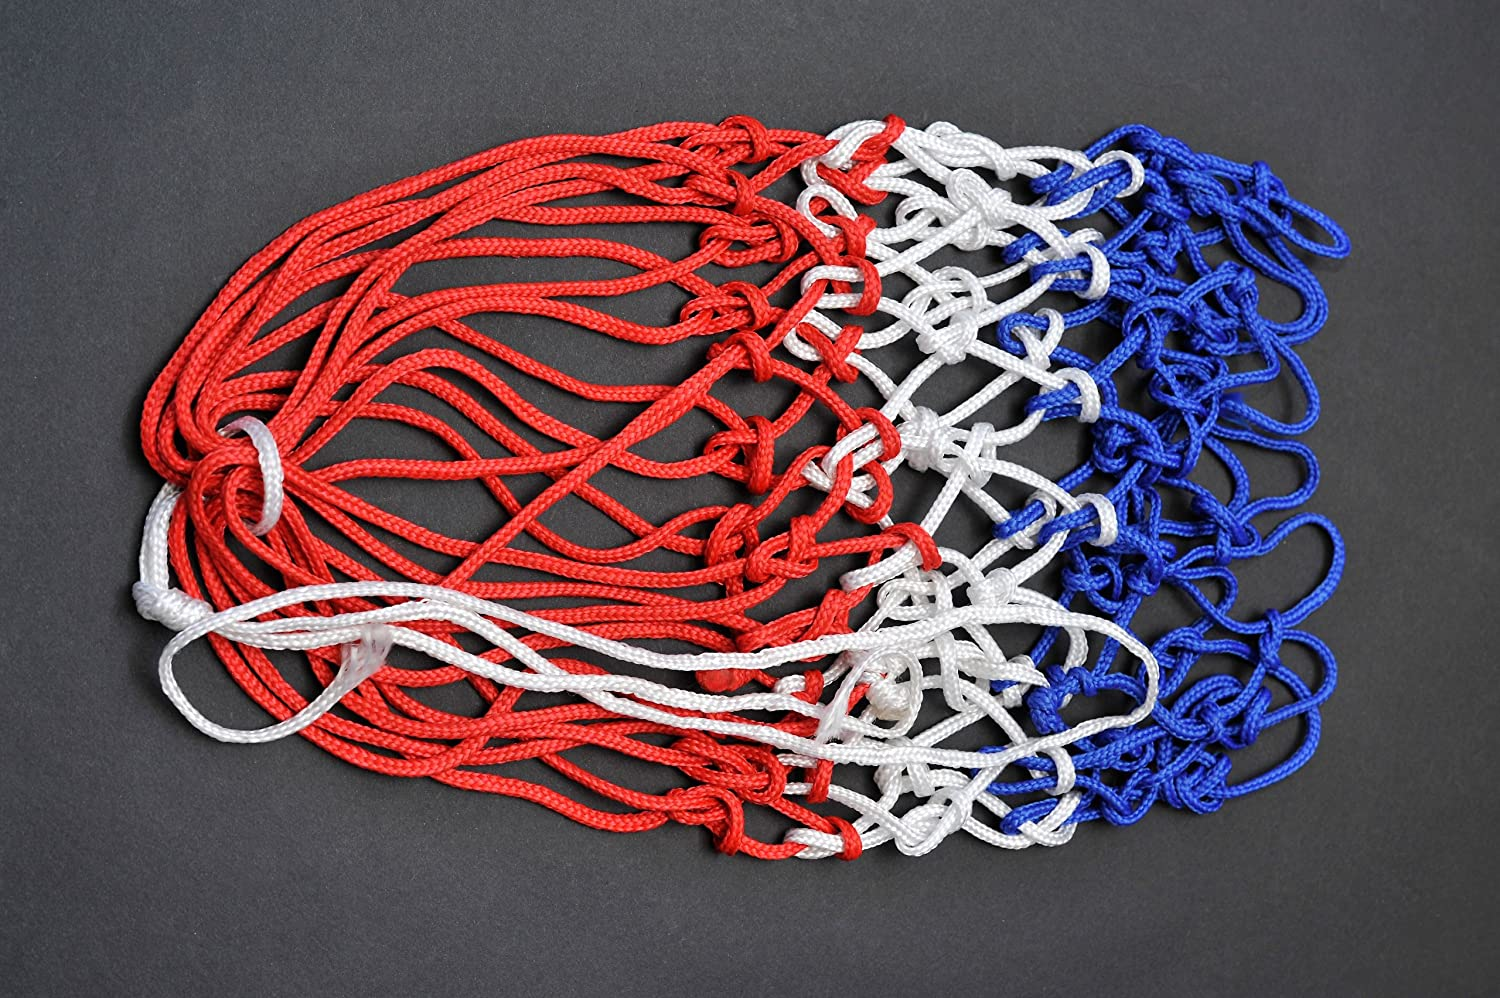 Netball net 3mm twine made in Britian. (Blue White and Red) Avonstar Trading